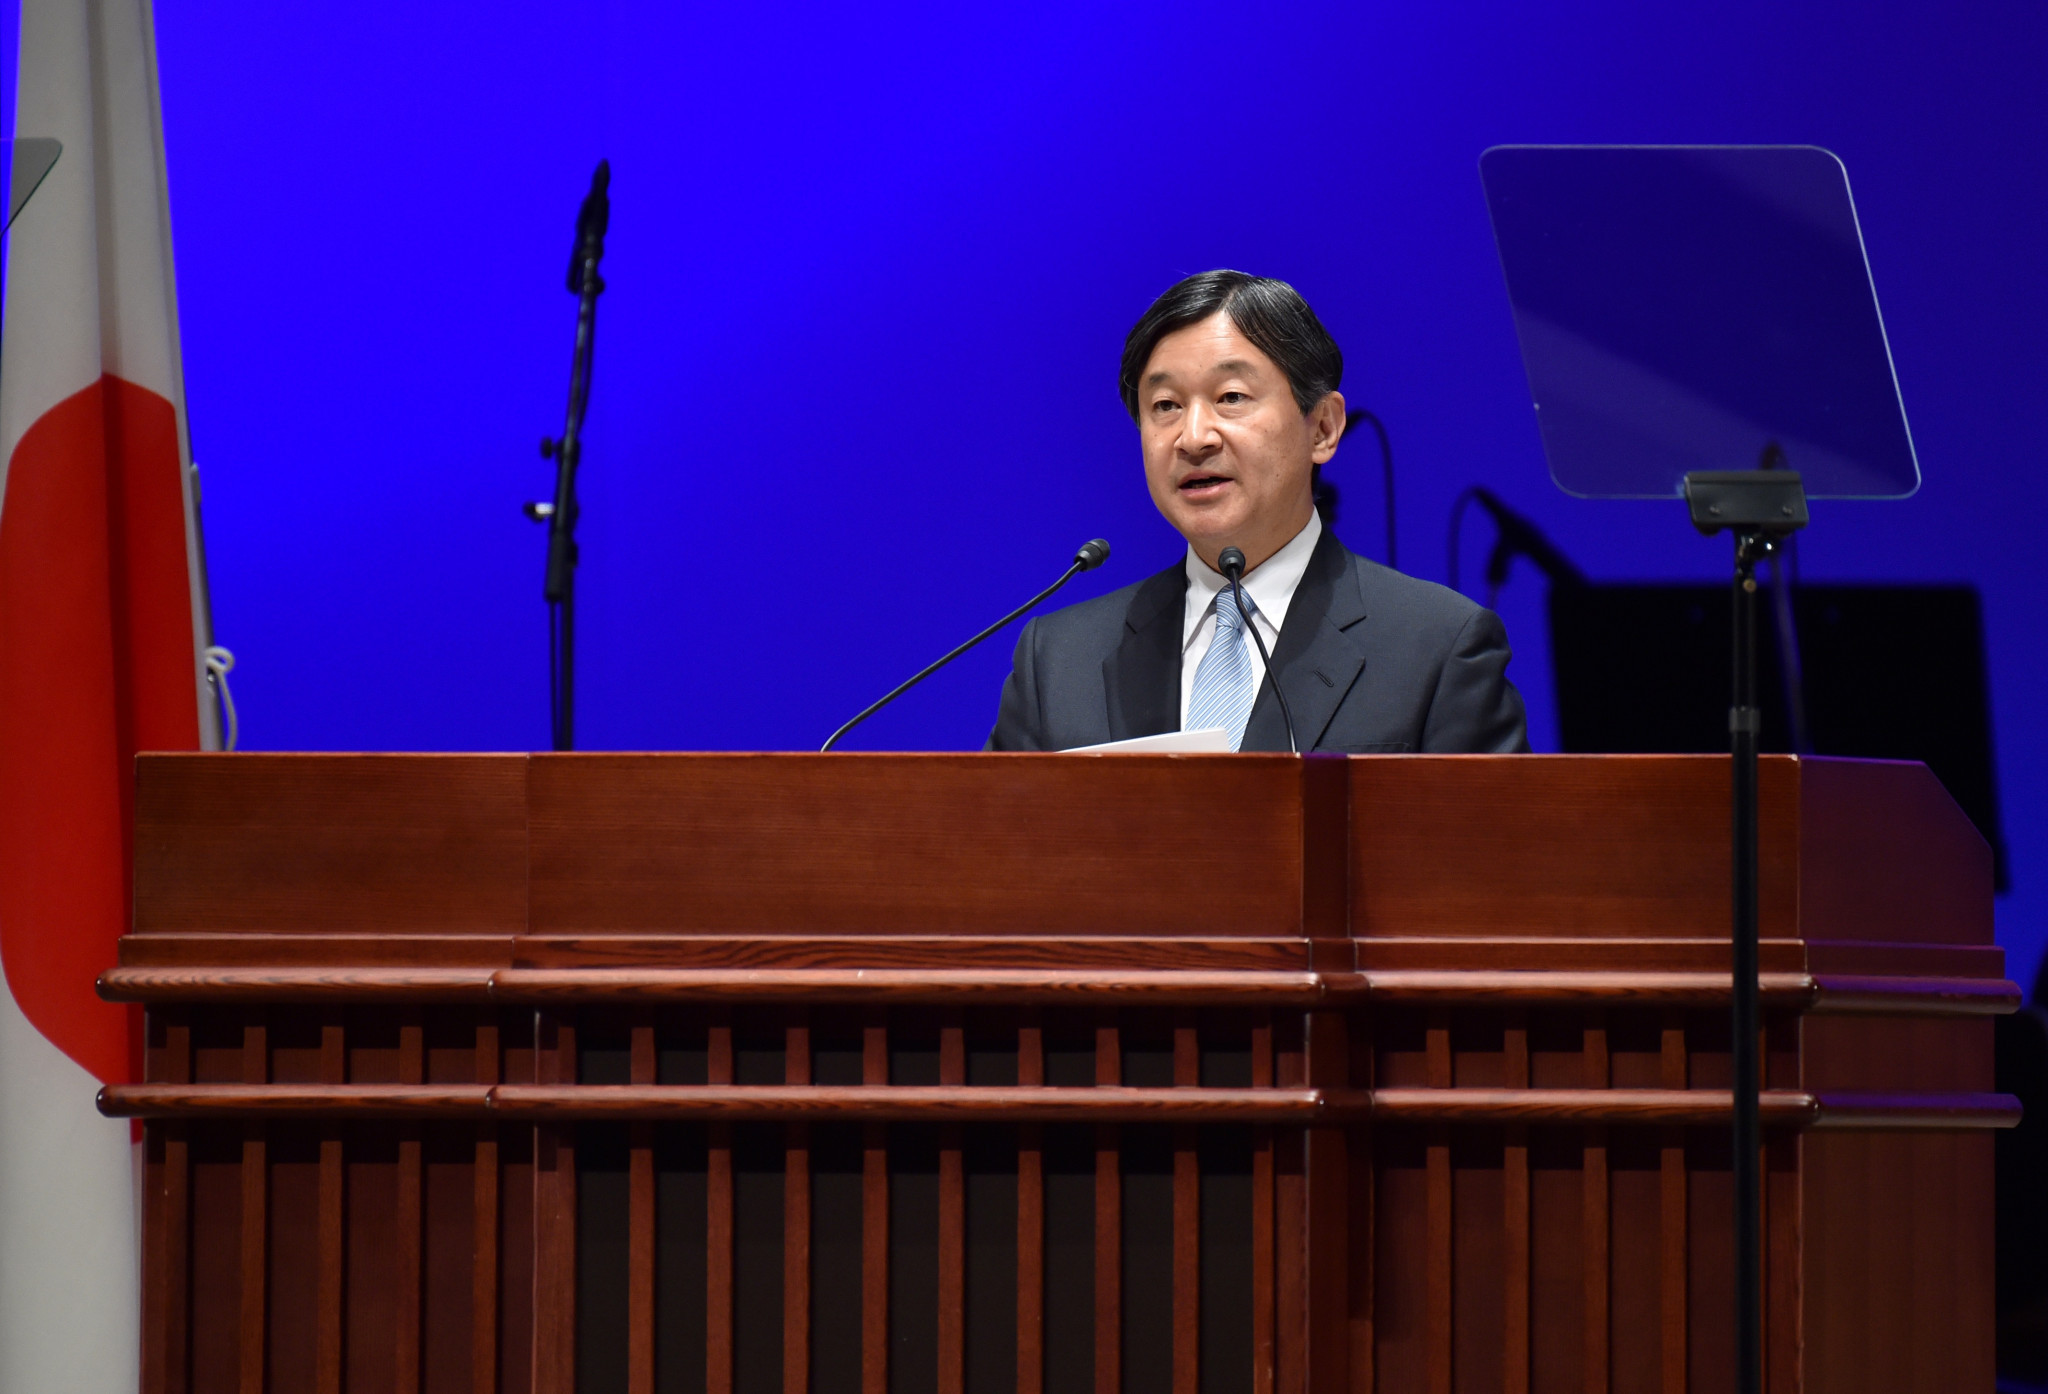 Japanese Crown Prince Naruhito is now in line to open Tokyo 2020 ©Getty Images